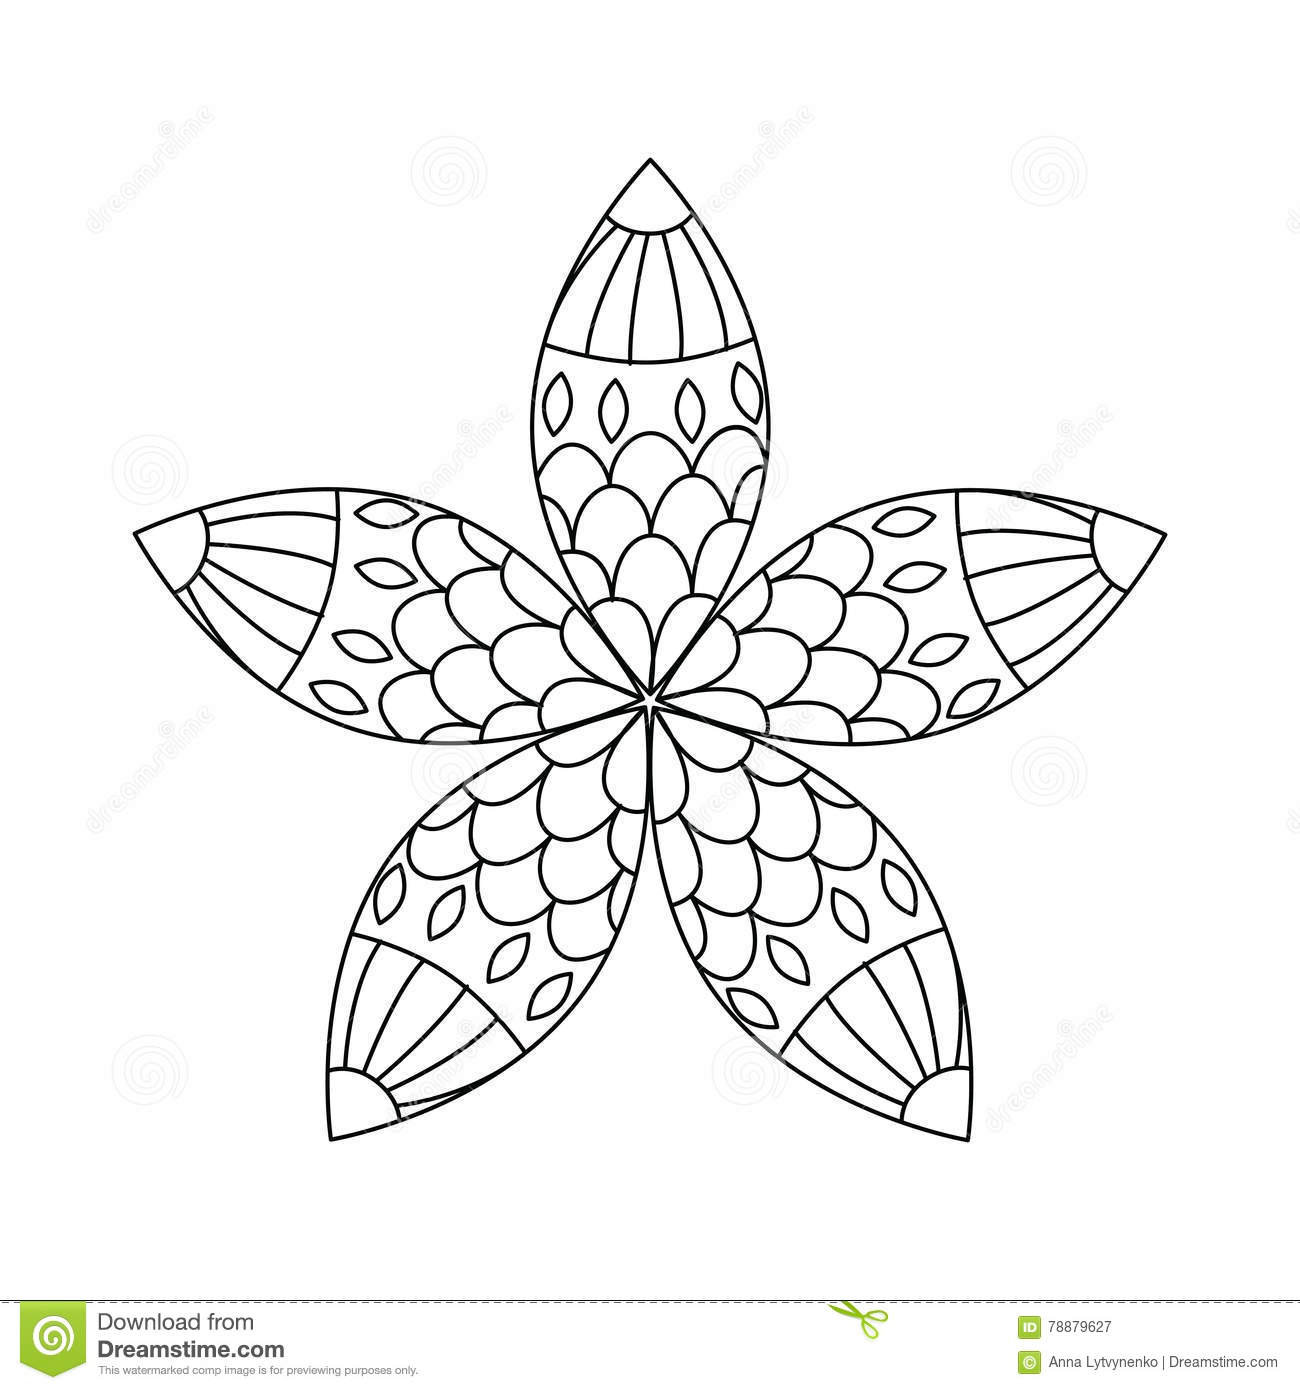 pictures to trace for adults colour it sew it trace it etc coloring pages adults on to adults for pictures trace